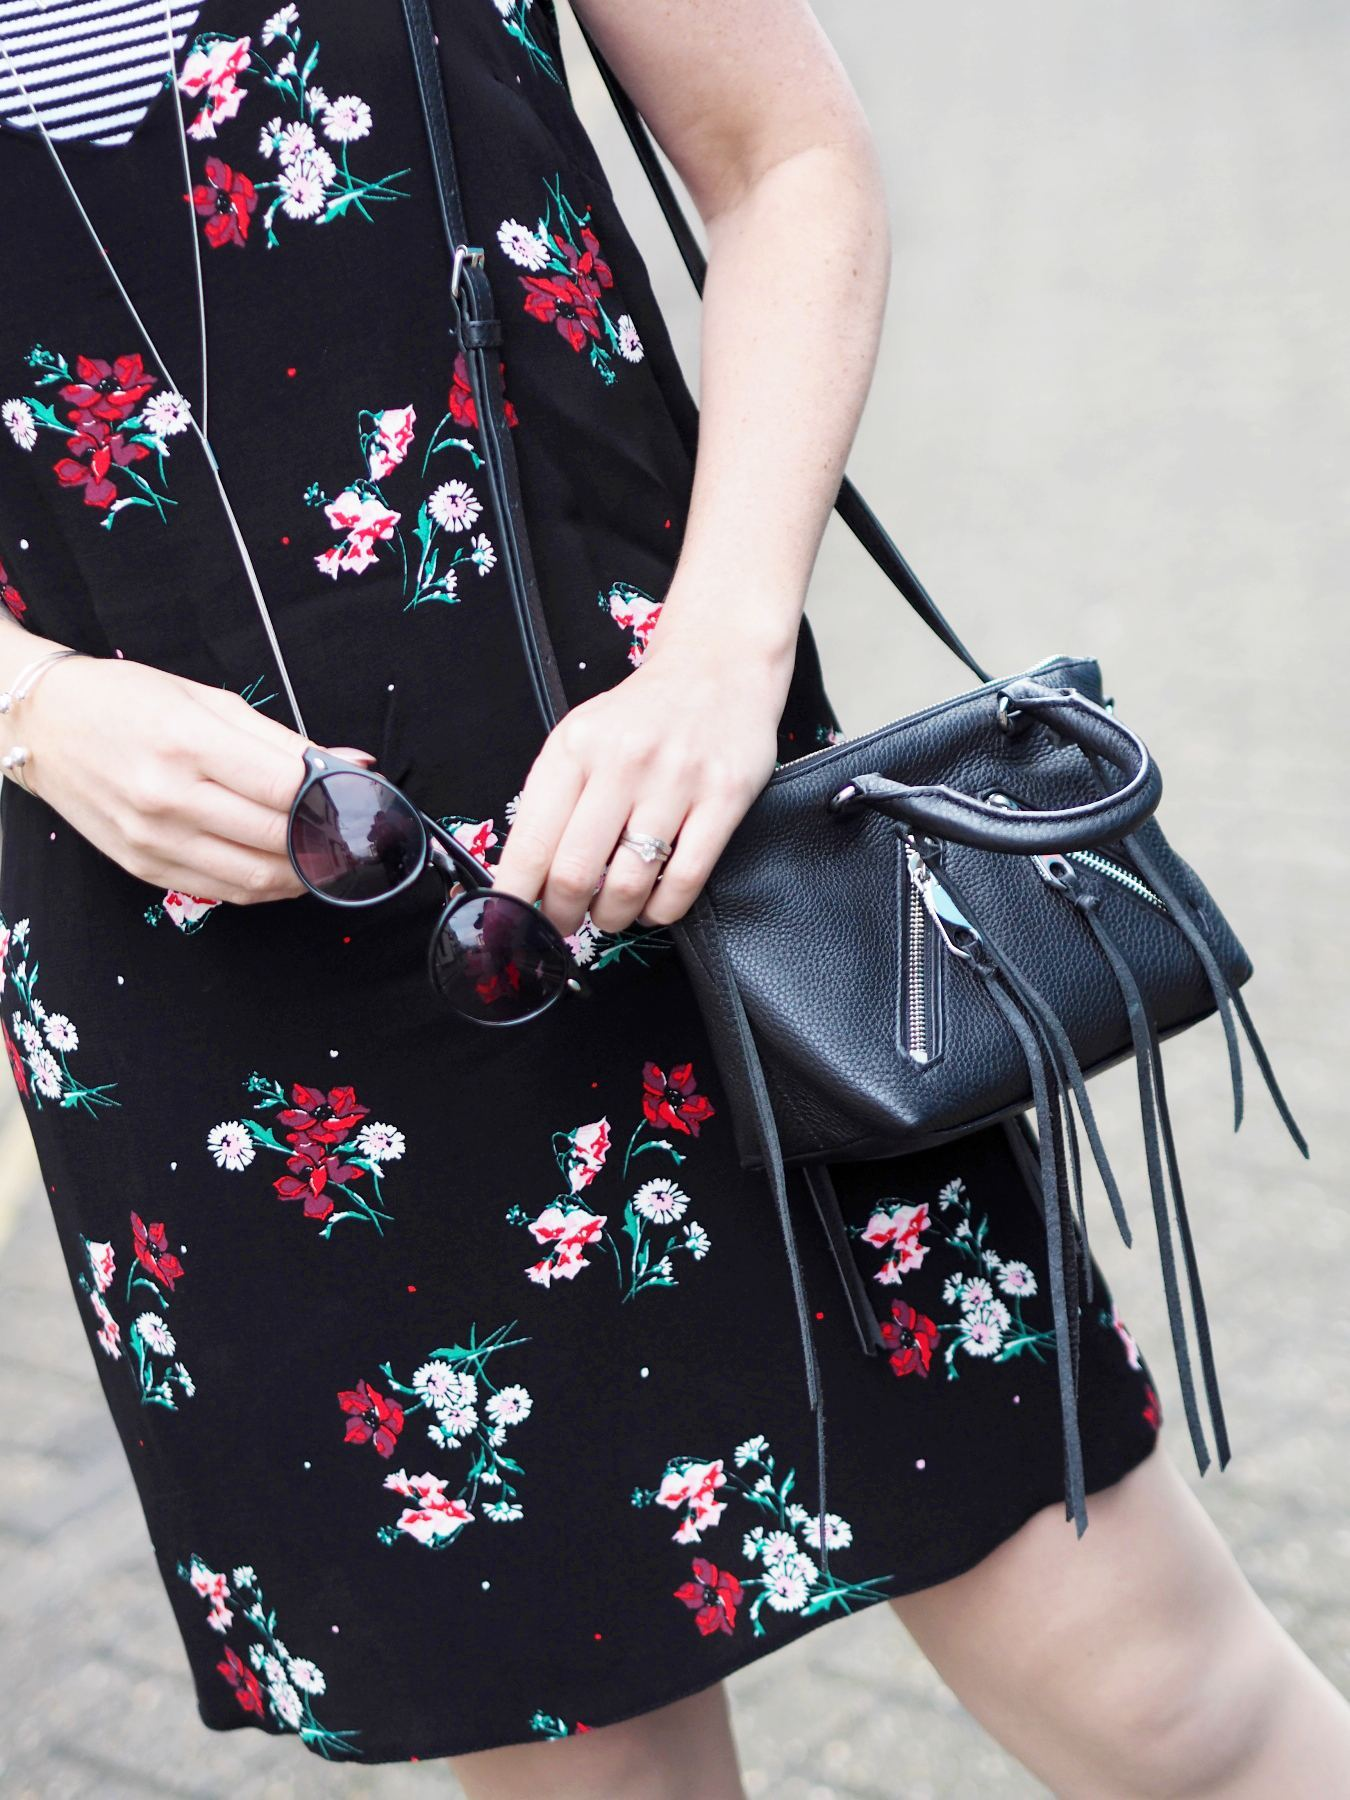 new look floral slip dress with striped tshirt and black rebecca minkoff bag